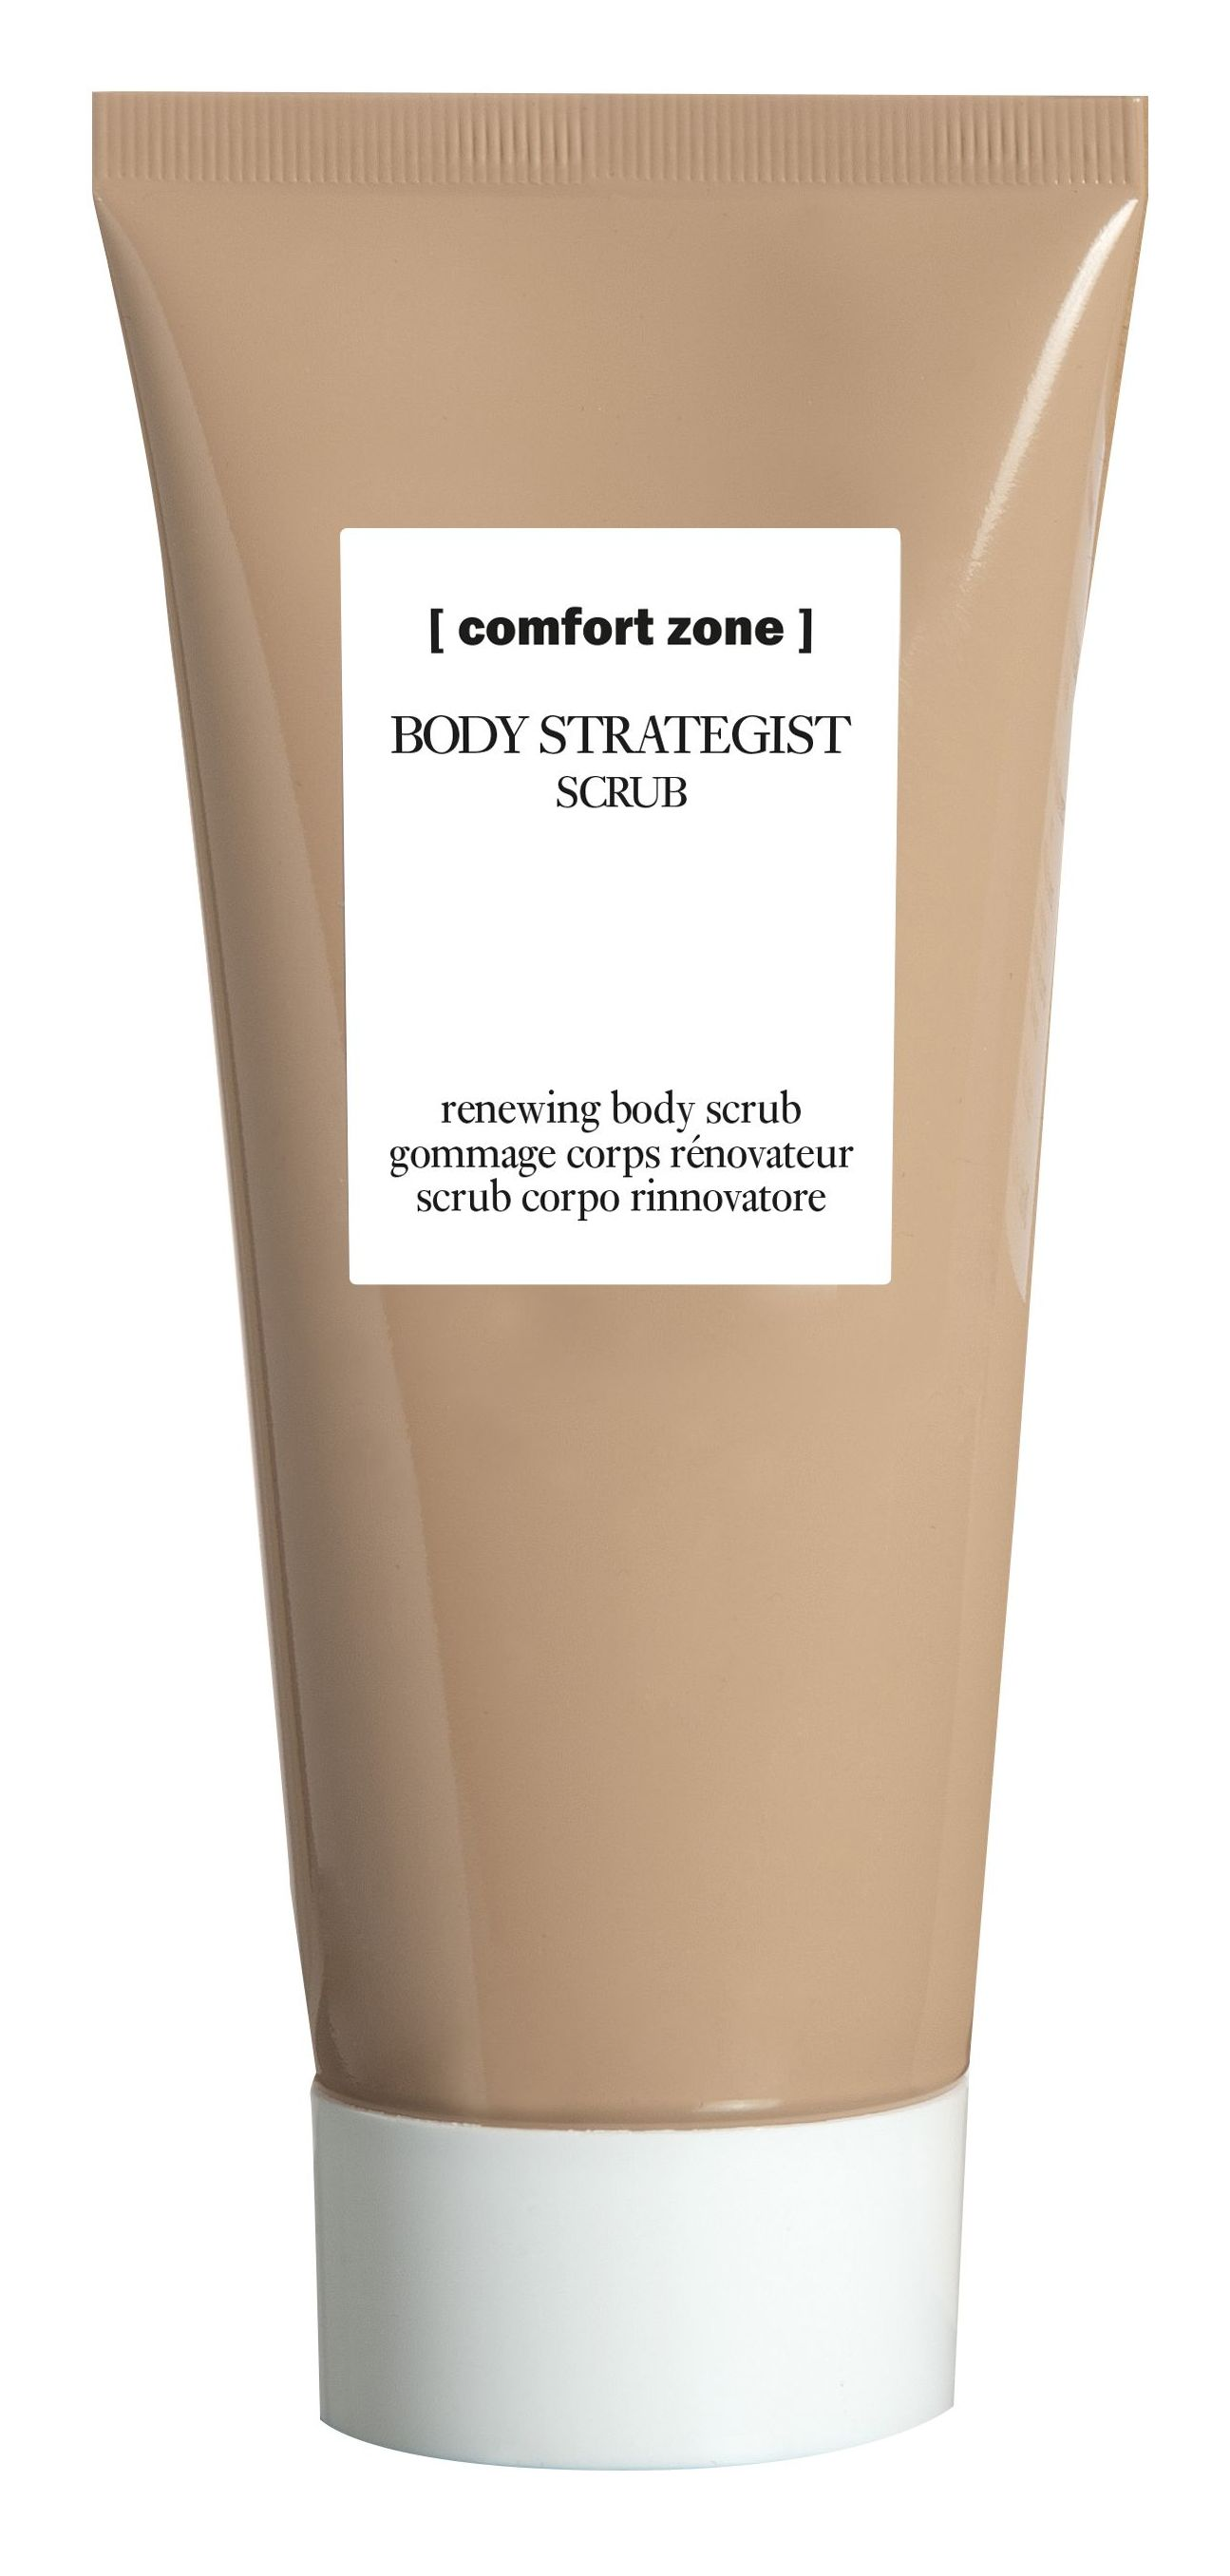 Body Strategist Scrub: Alta Cosmética Natural de Sostenible Beauty Concepts